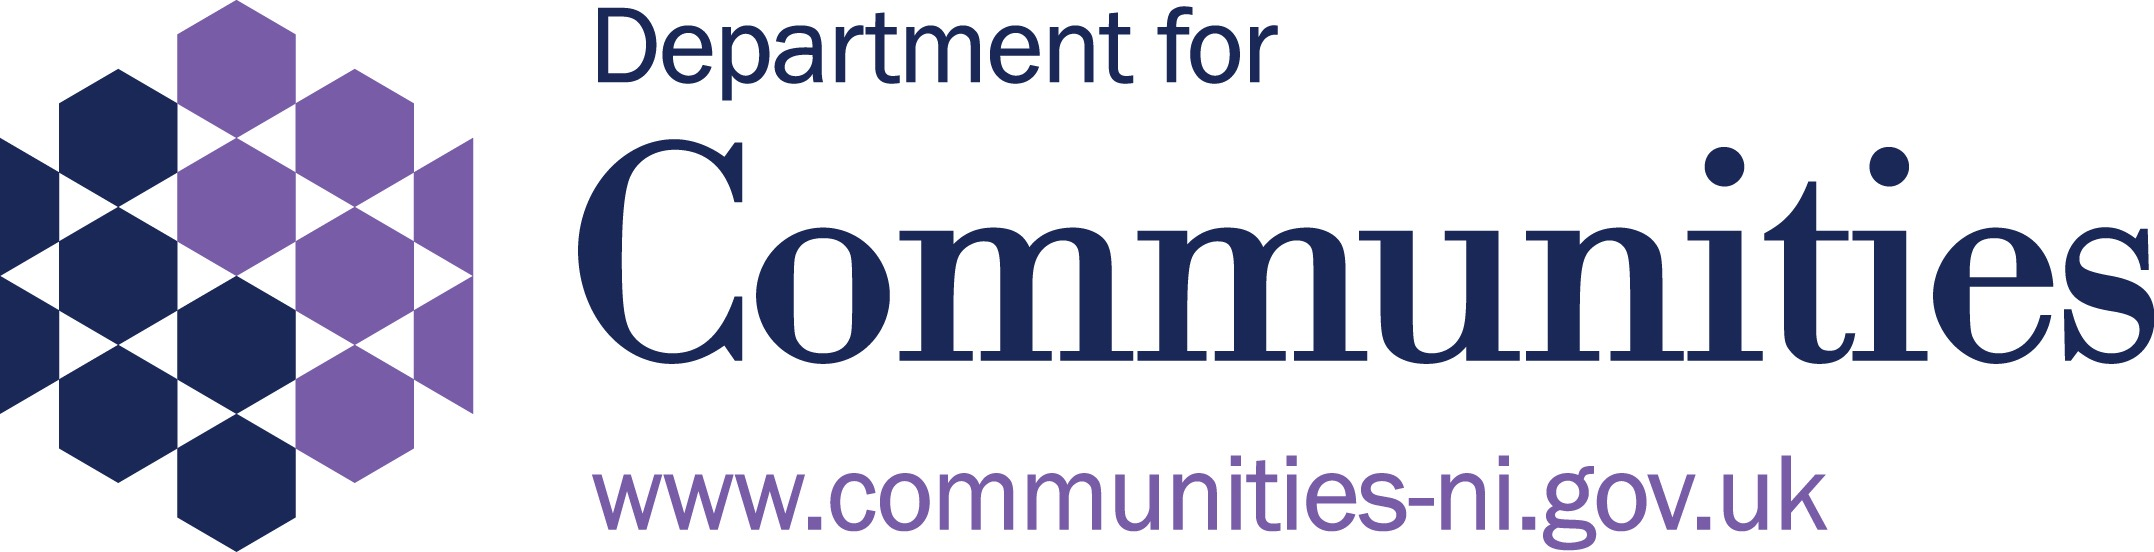 Department for the Communities logo